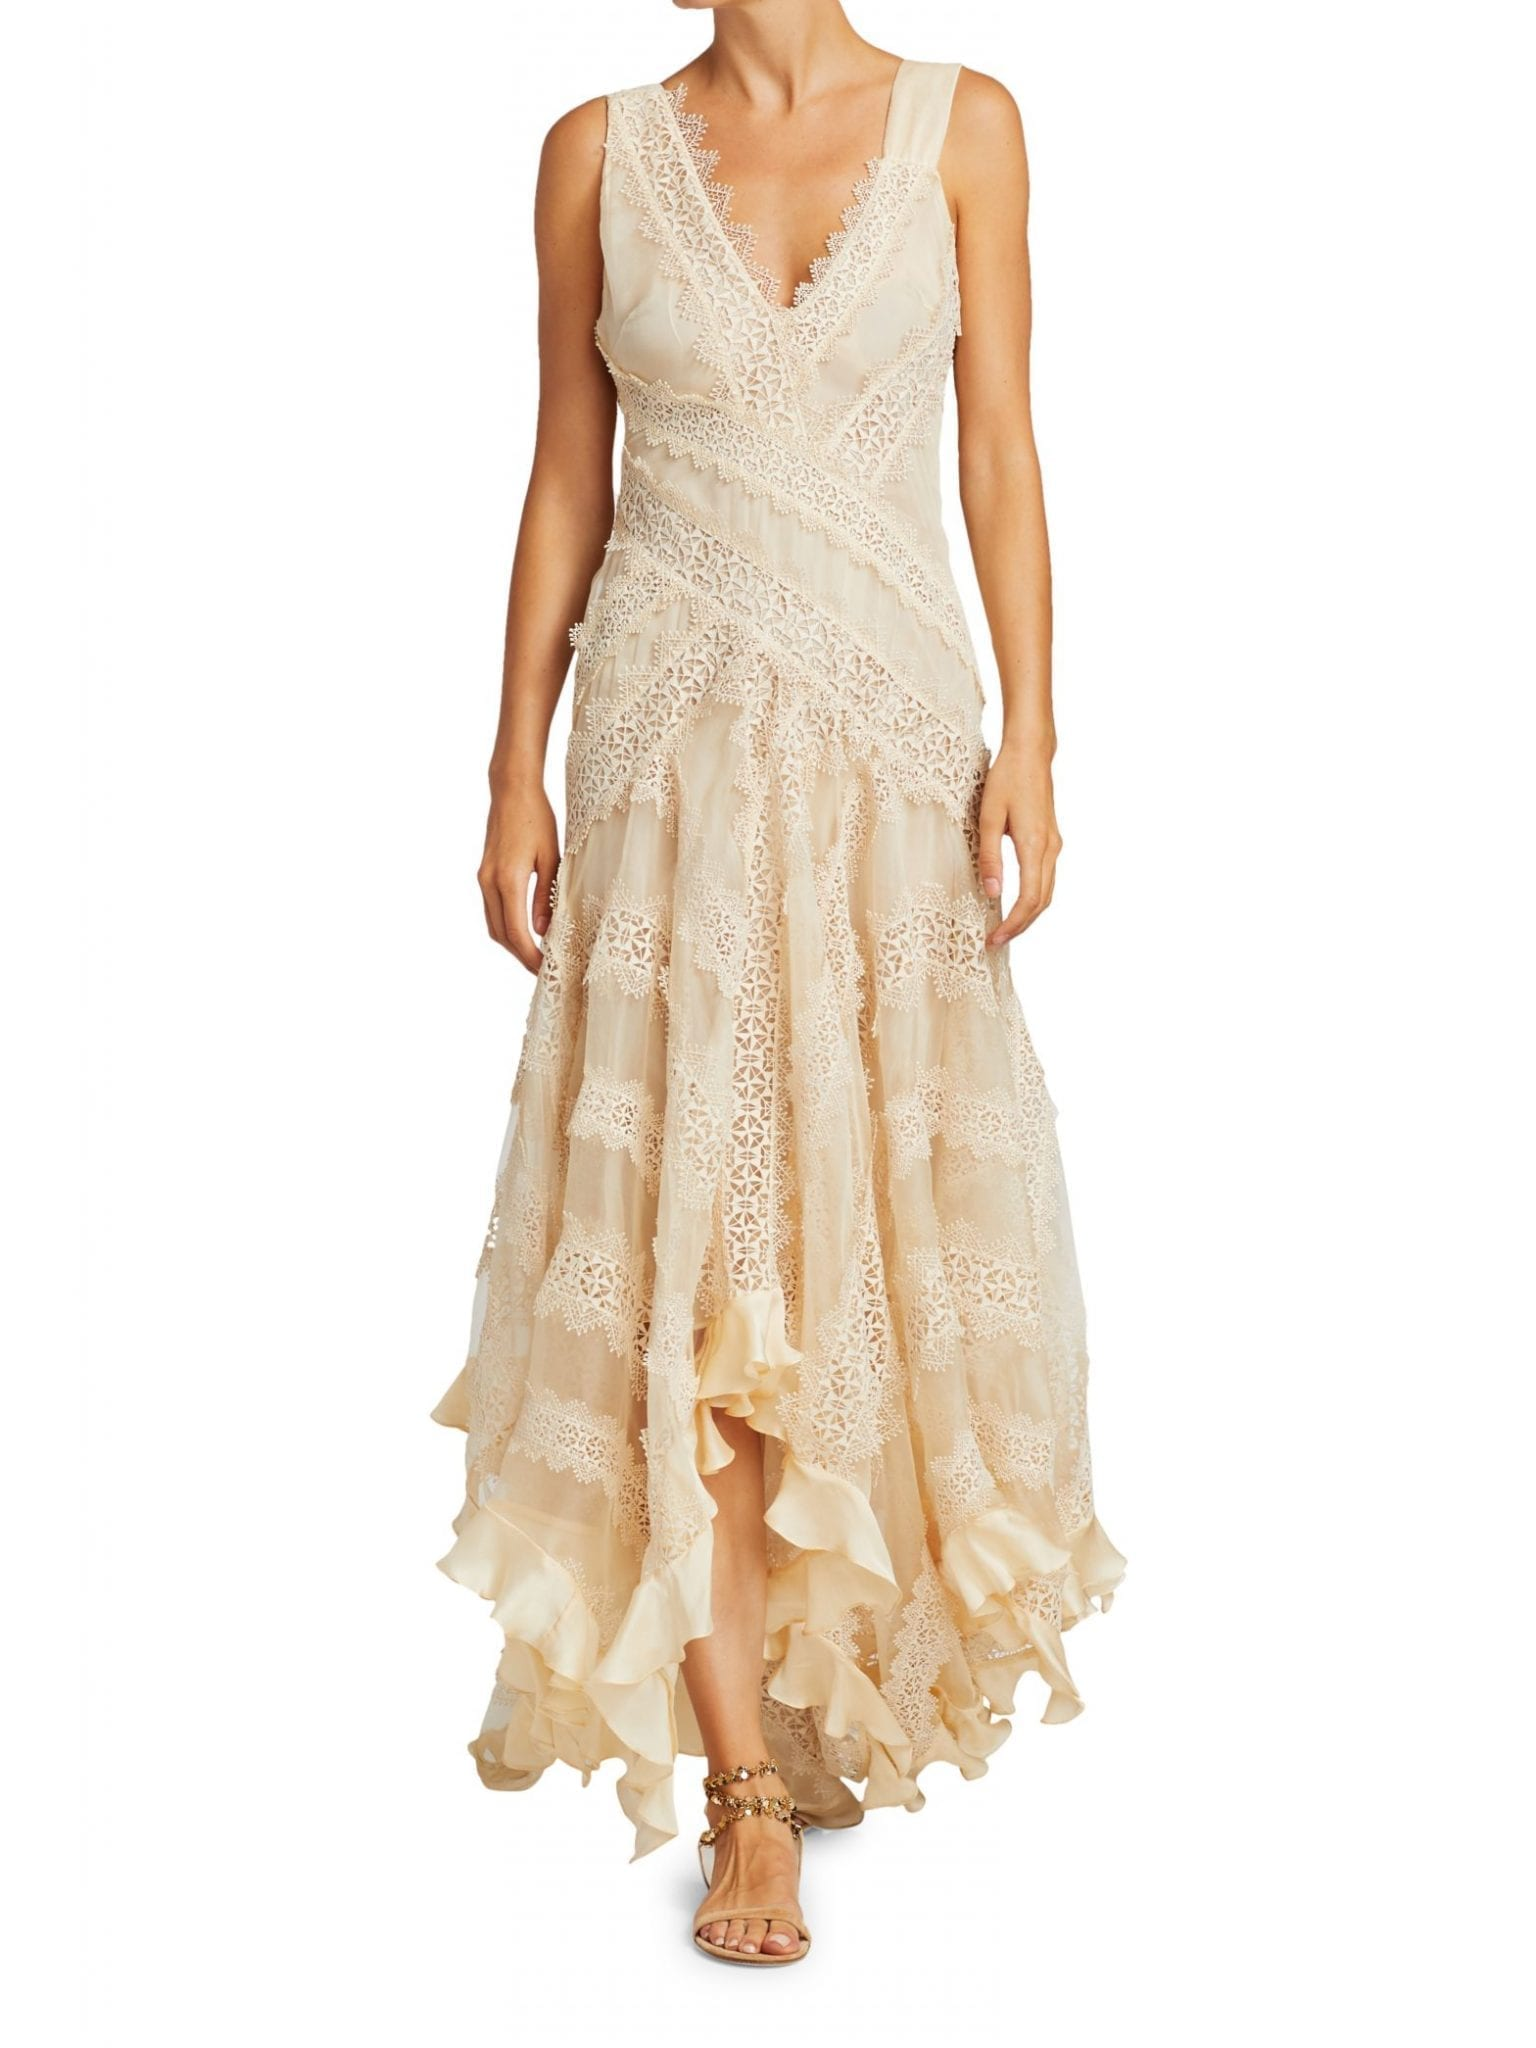 ZIMMERMANN Charm Star Lace Handkerchief Hem Slip Dress